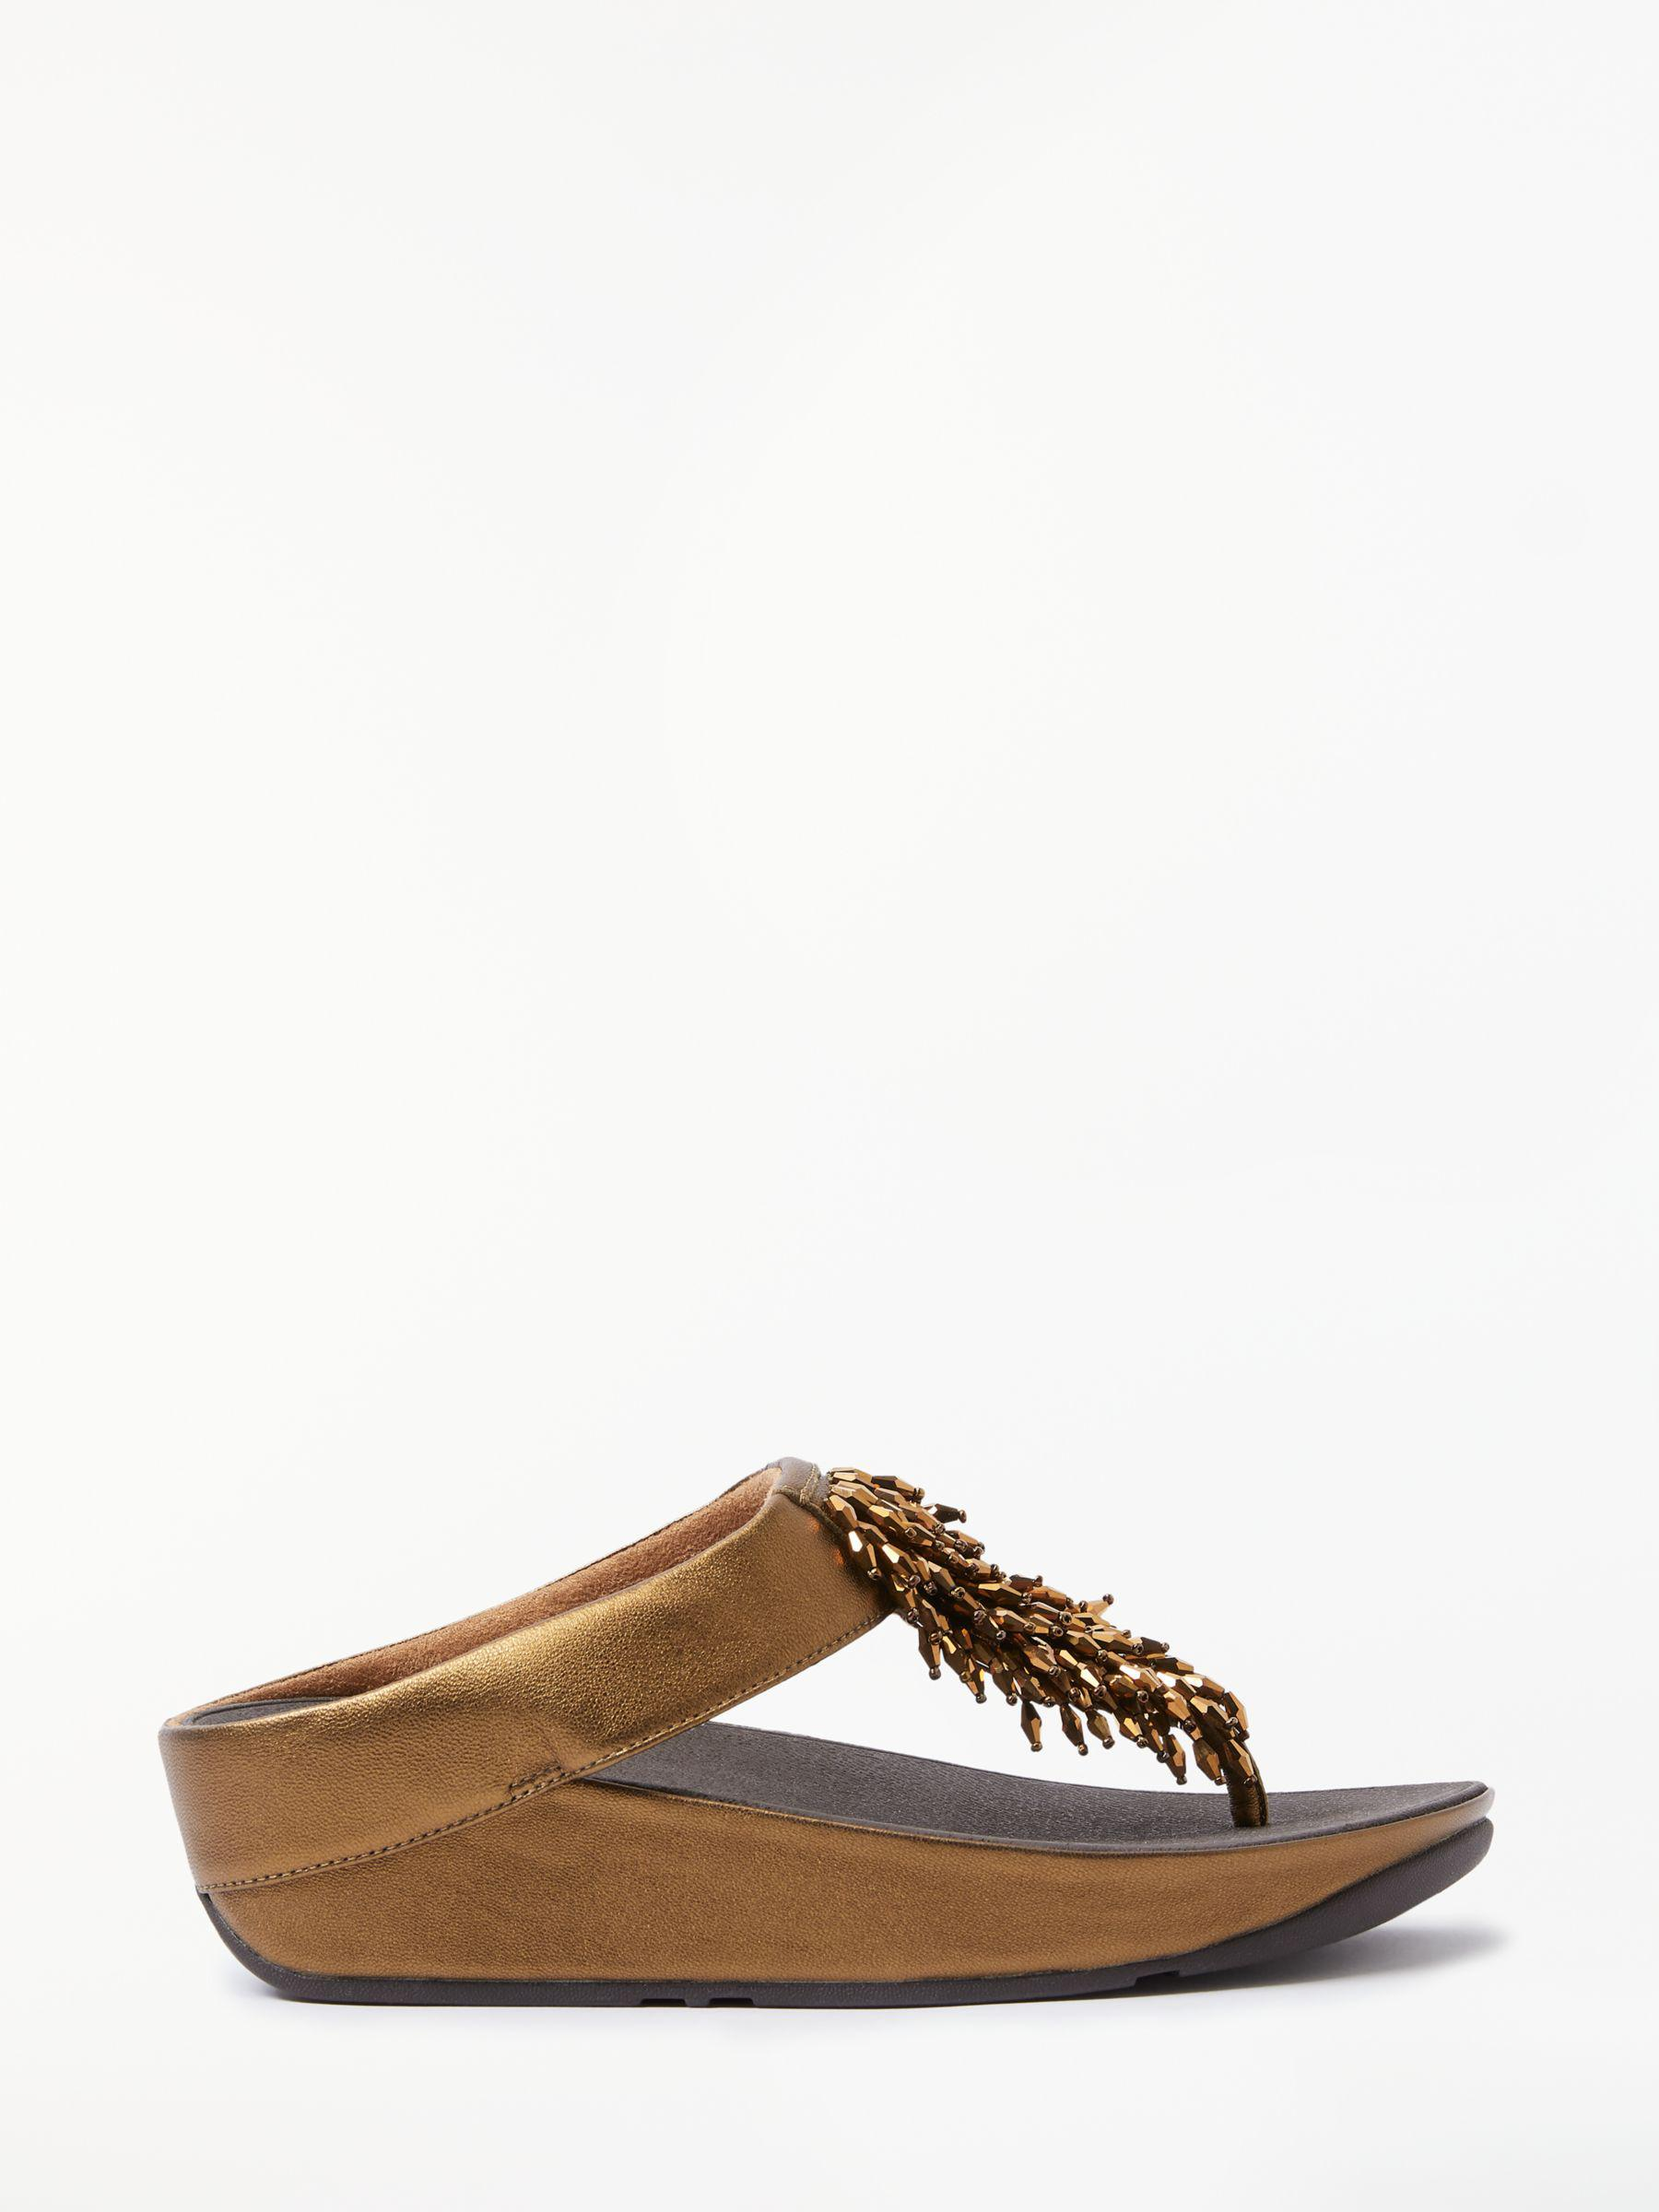 6e9d25696 Fitflop - Brown Rumba Embellished Toe Post Sandals - Lyst. View fullscreen